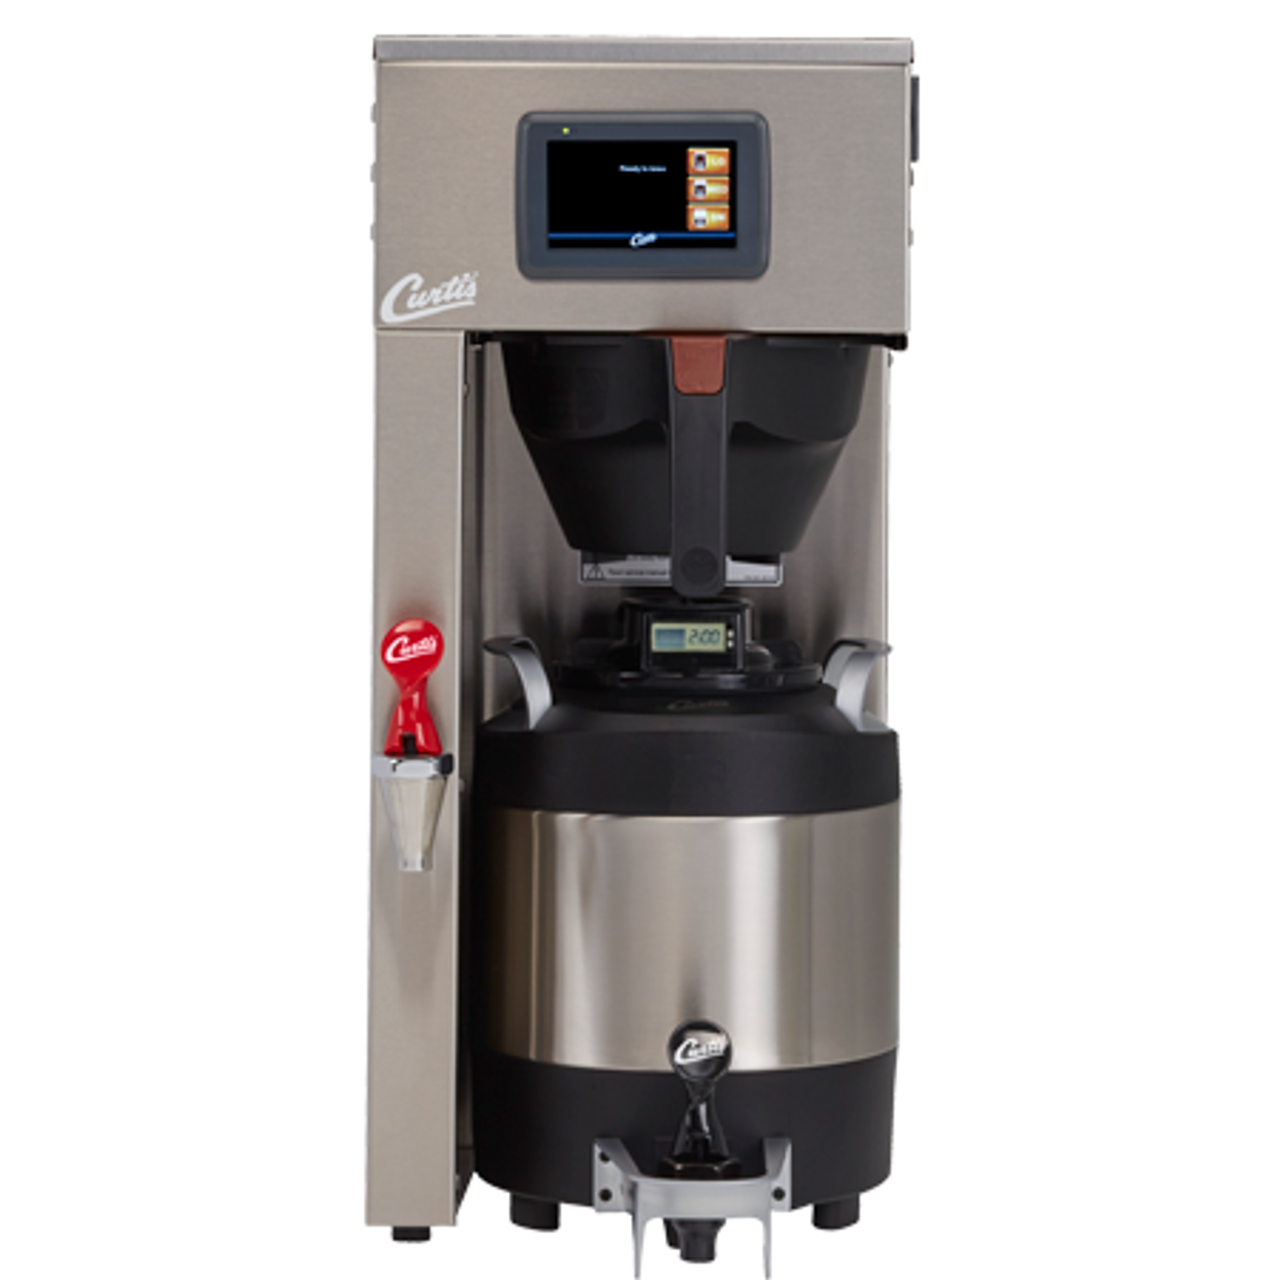 e86dadf02 ... Wilbur Curtis G4 ThermoPro Single Coffee Brewer · Coffee carafe not  included